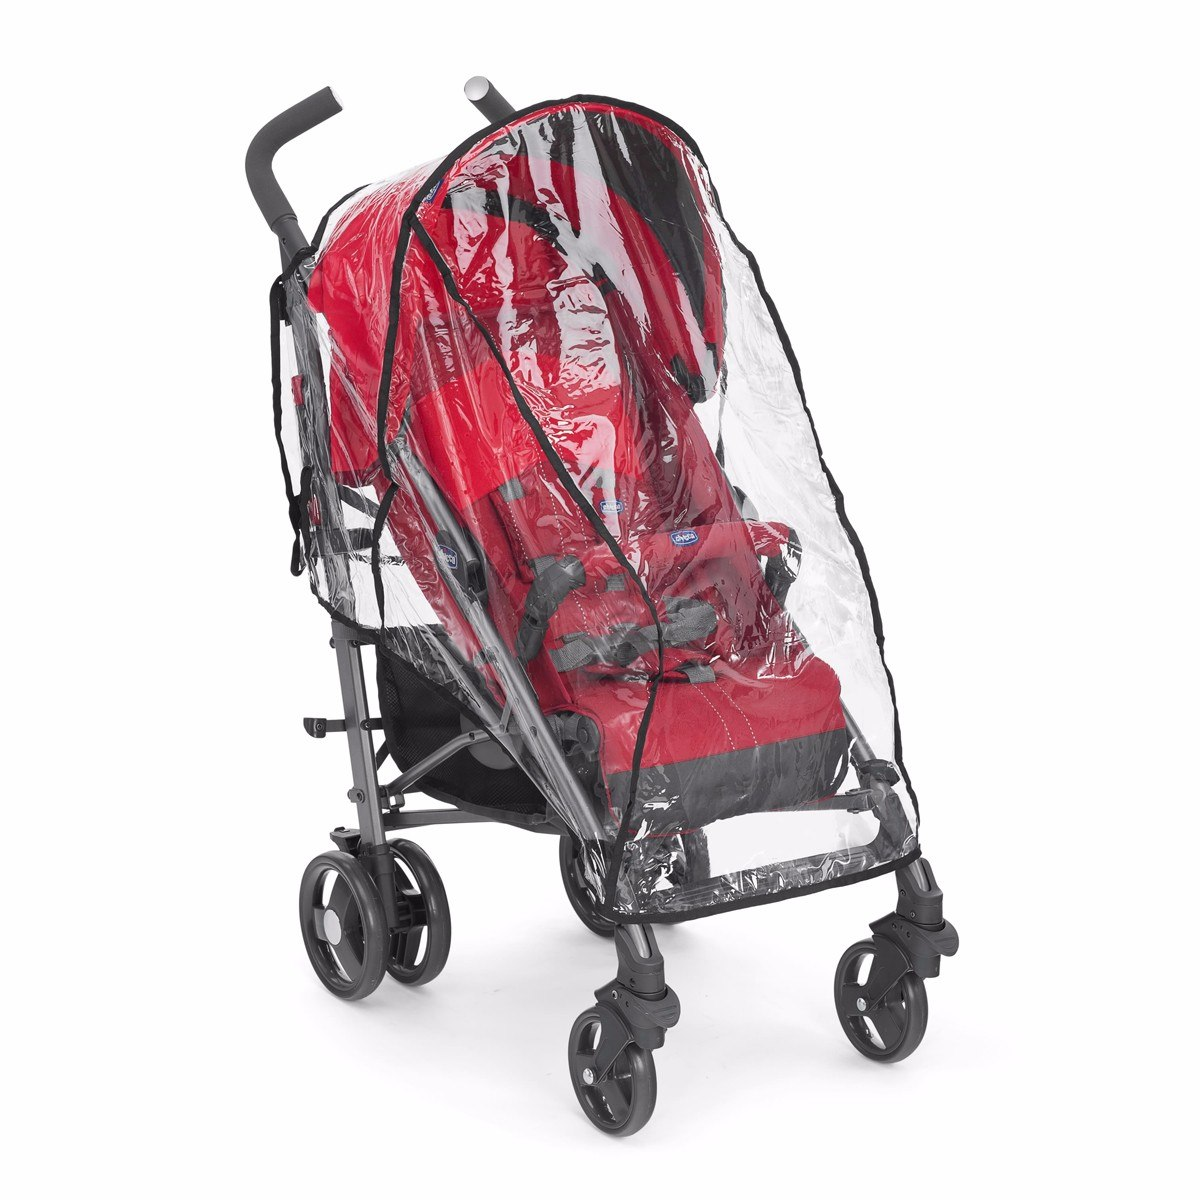 Carriola de baston chicco liteway 2 color rojo 2 898 - Silla chicco liteway 2 ...